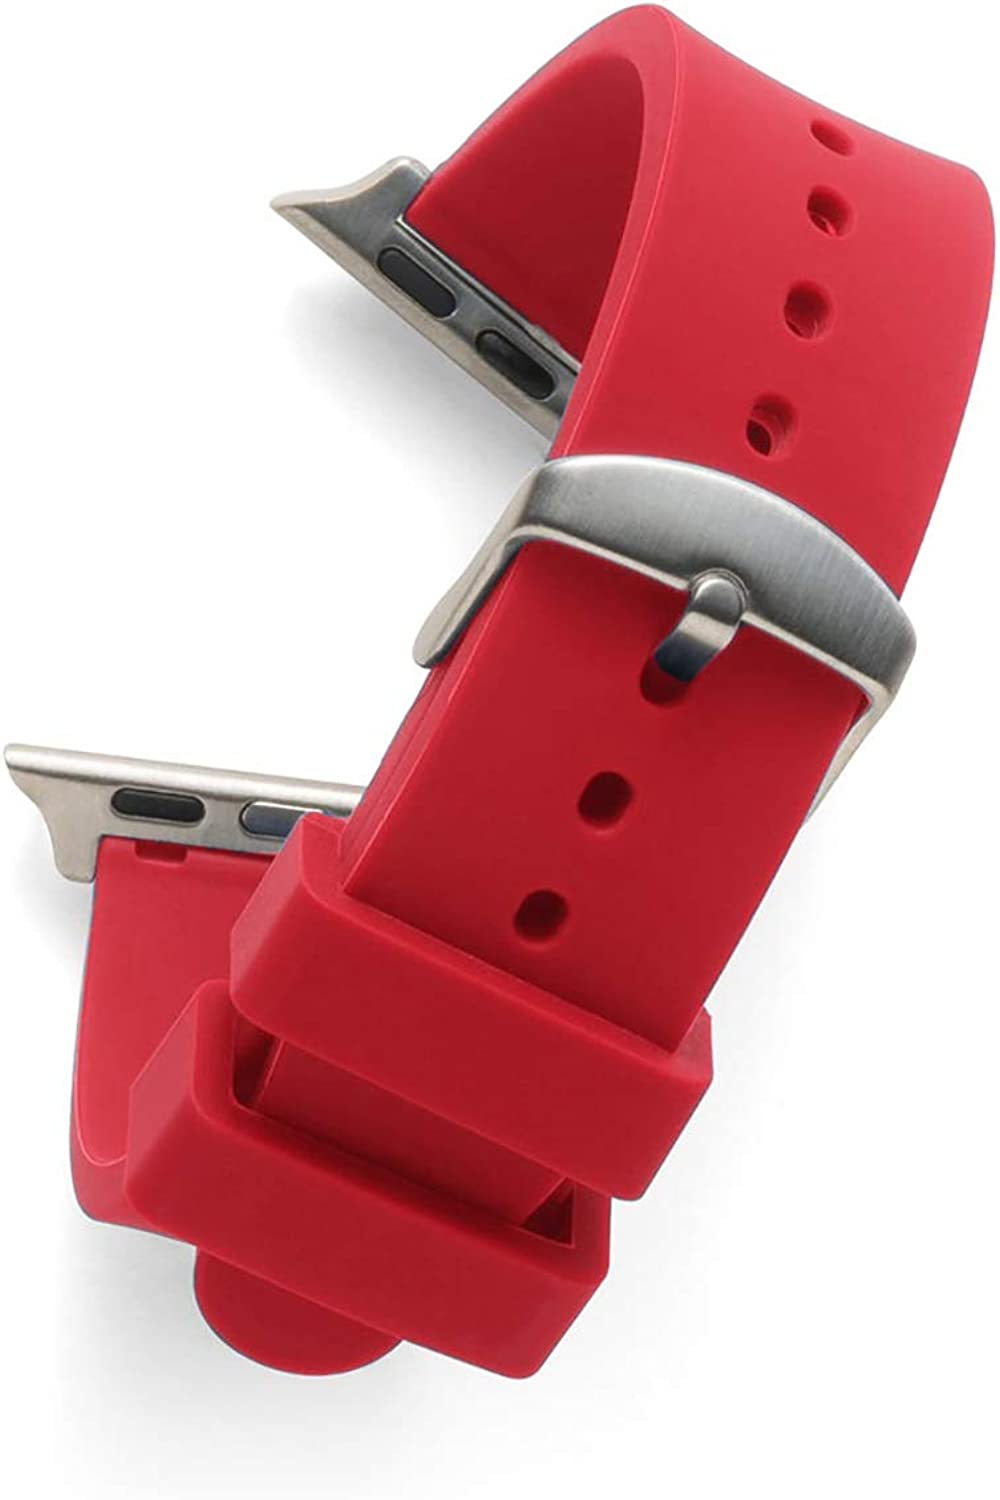 Speidel Replacement Watchband for The Apple Watch Series 1,2,3,4 & 5 in Match Scrub Color, Multiple Color Options